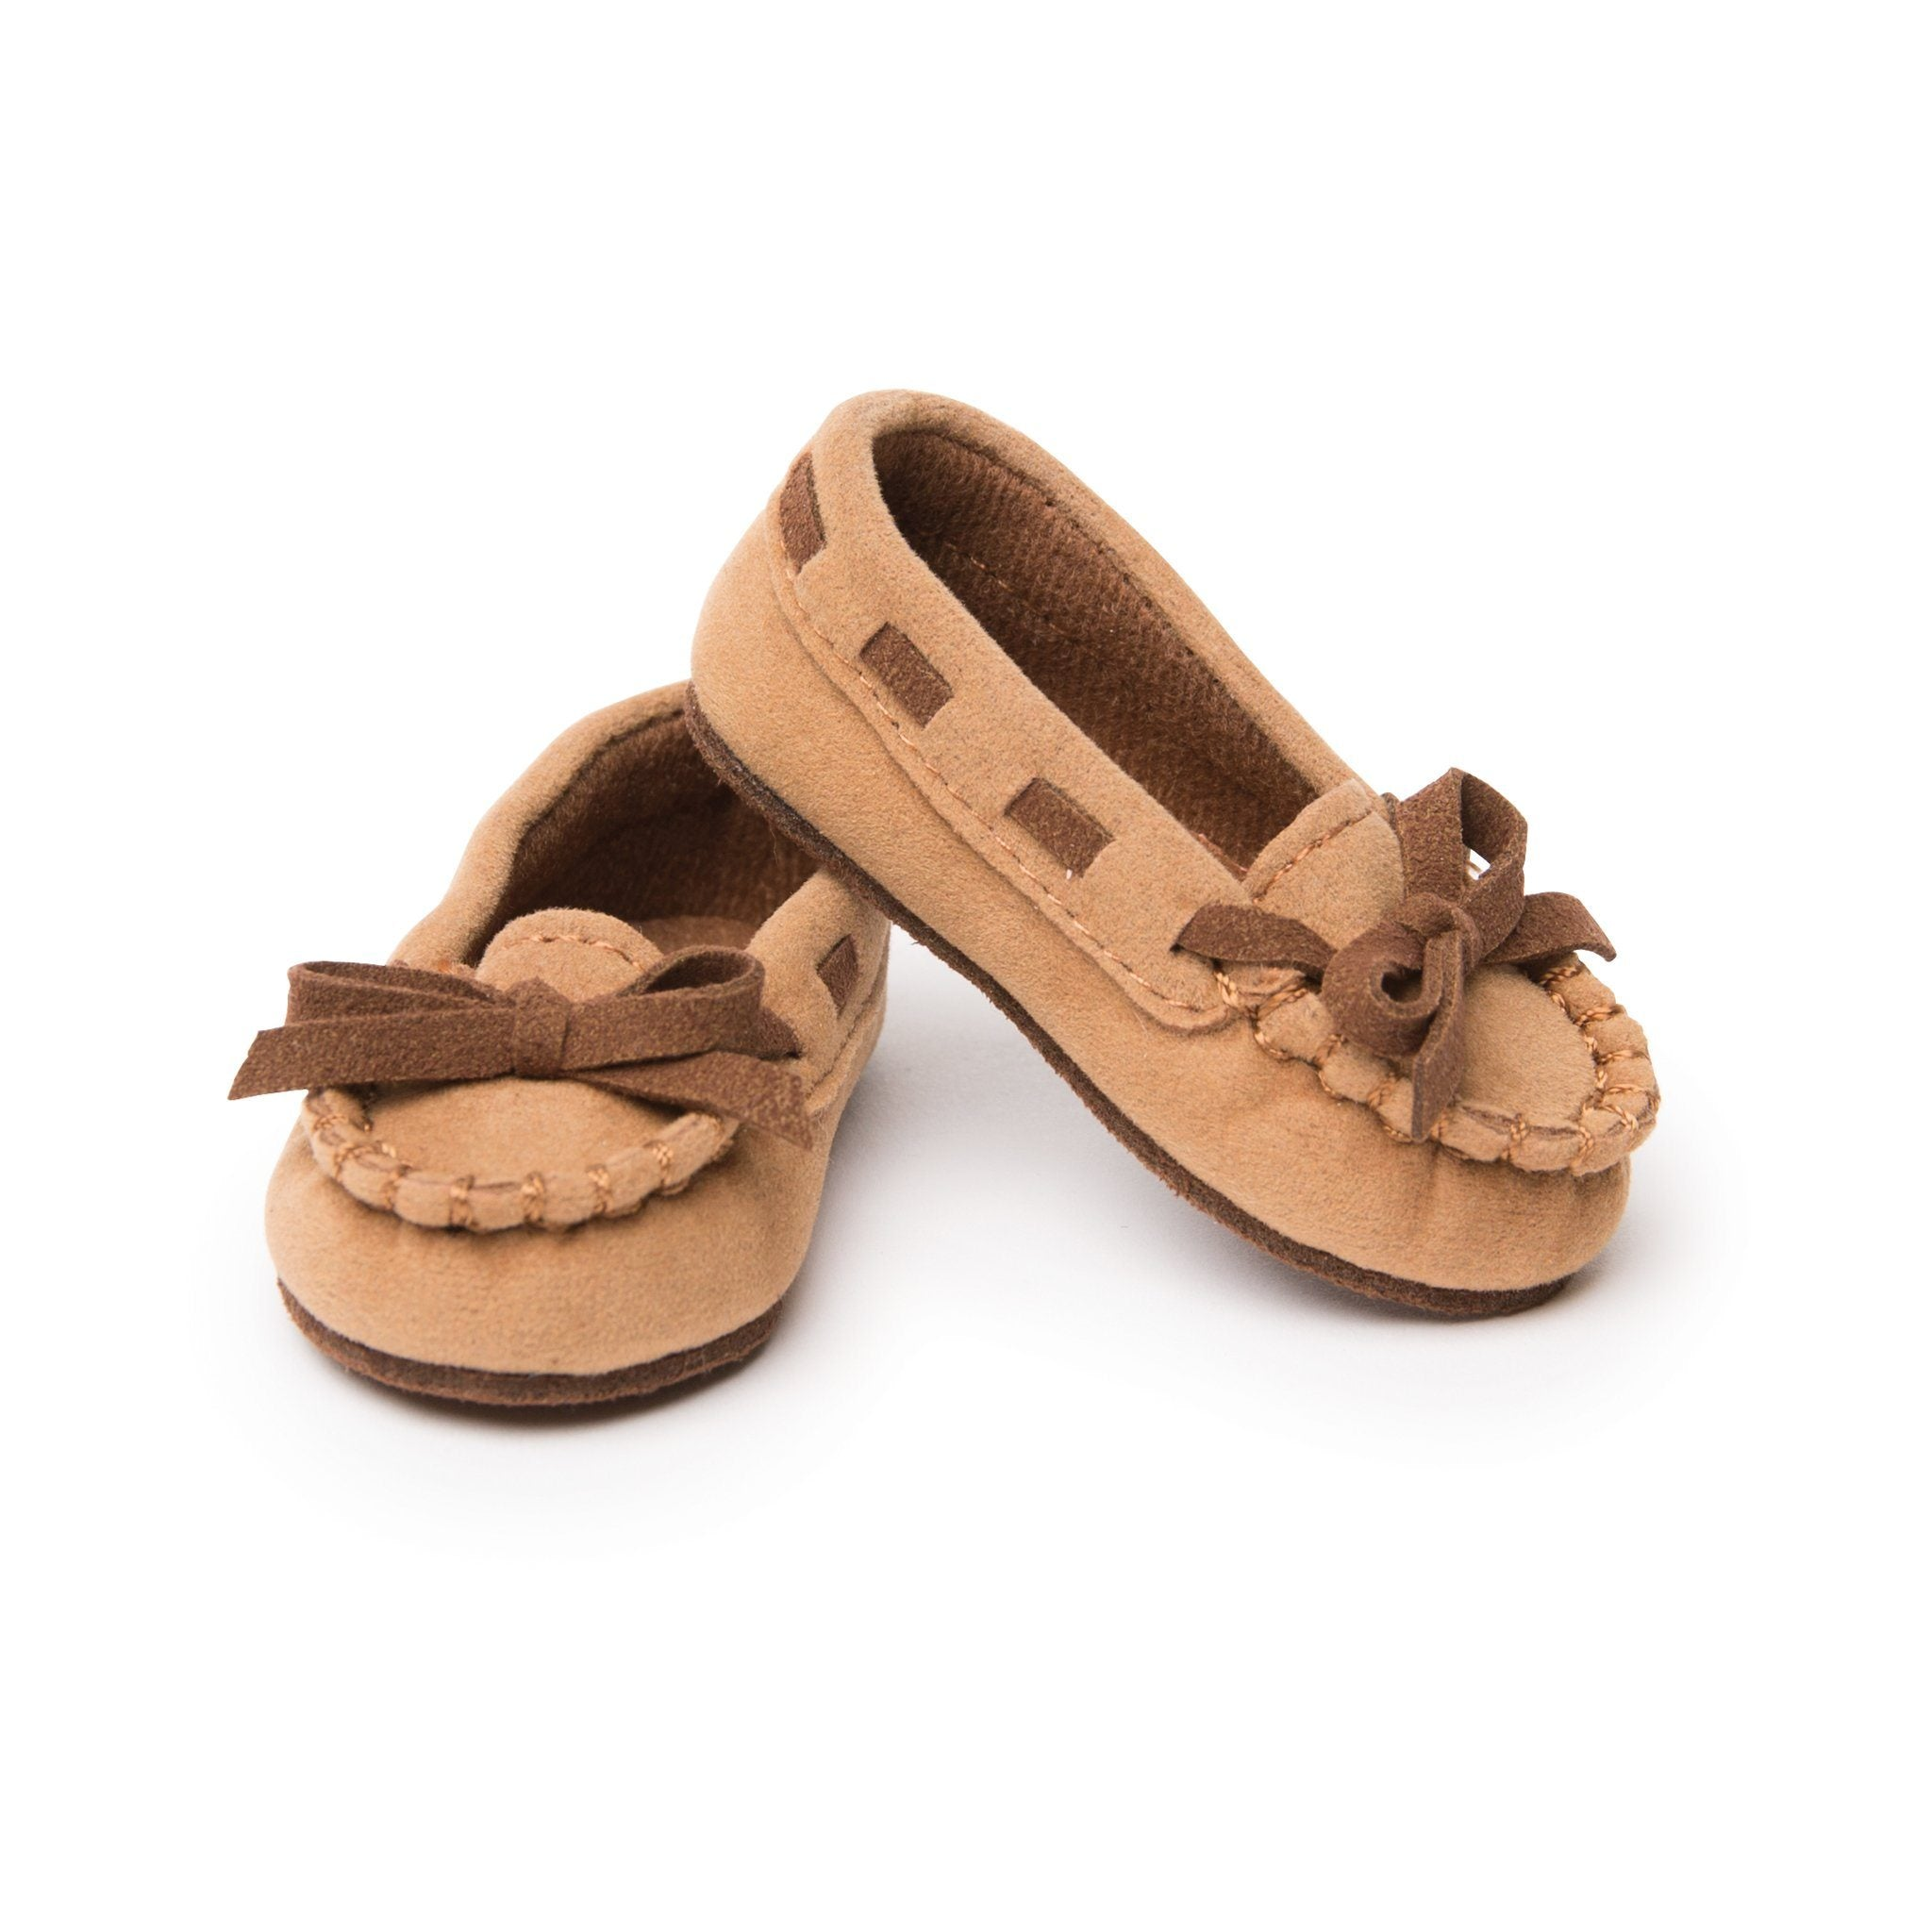 Walkin in Mocassins tan moccasin shoes with brown accents fit all 18 inch dolls.